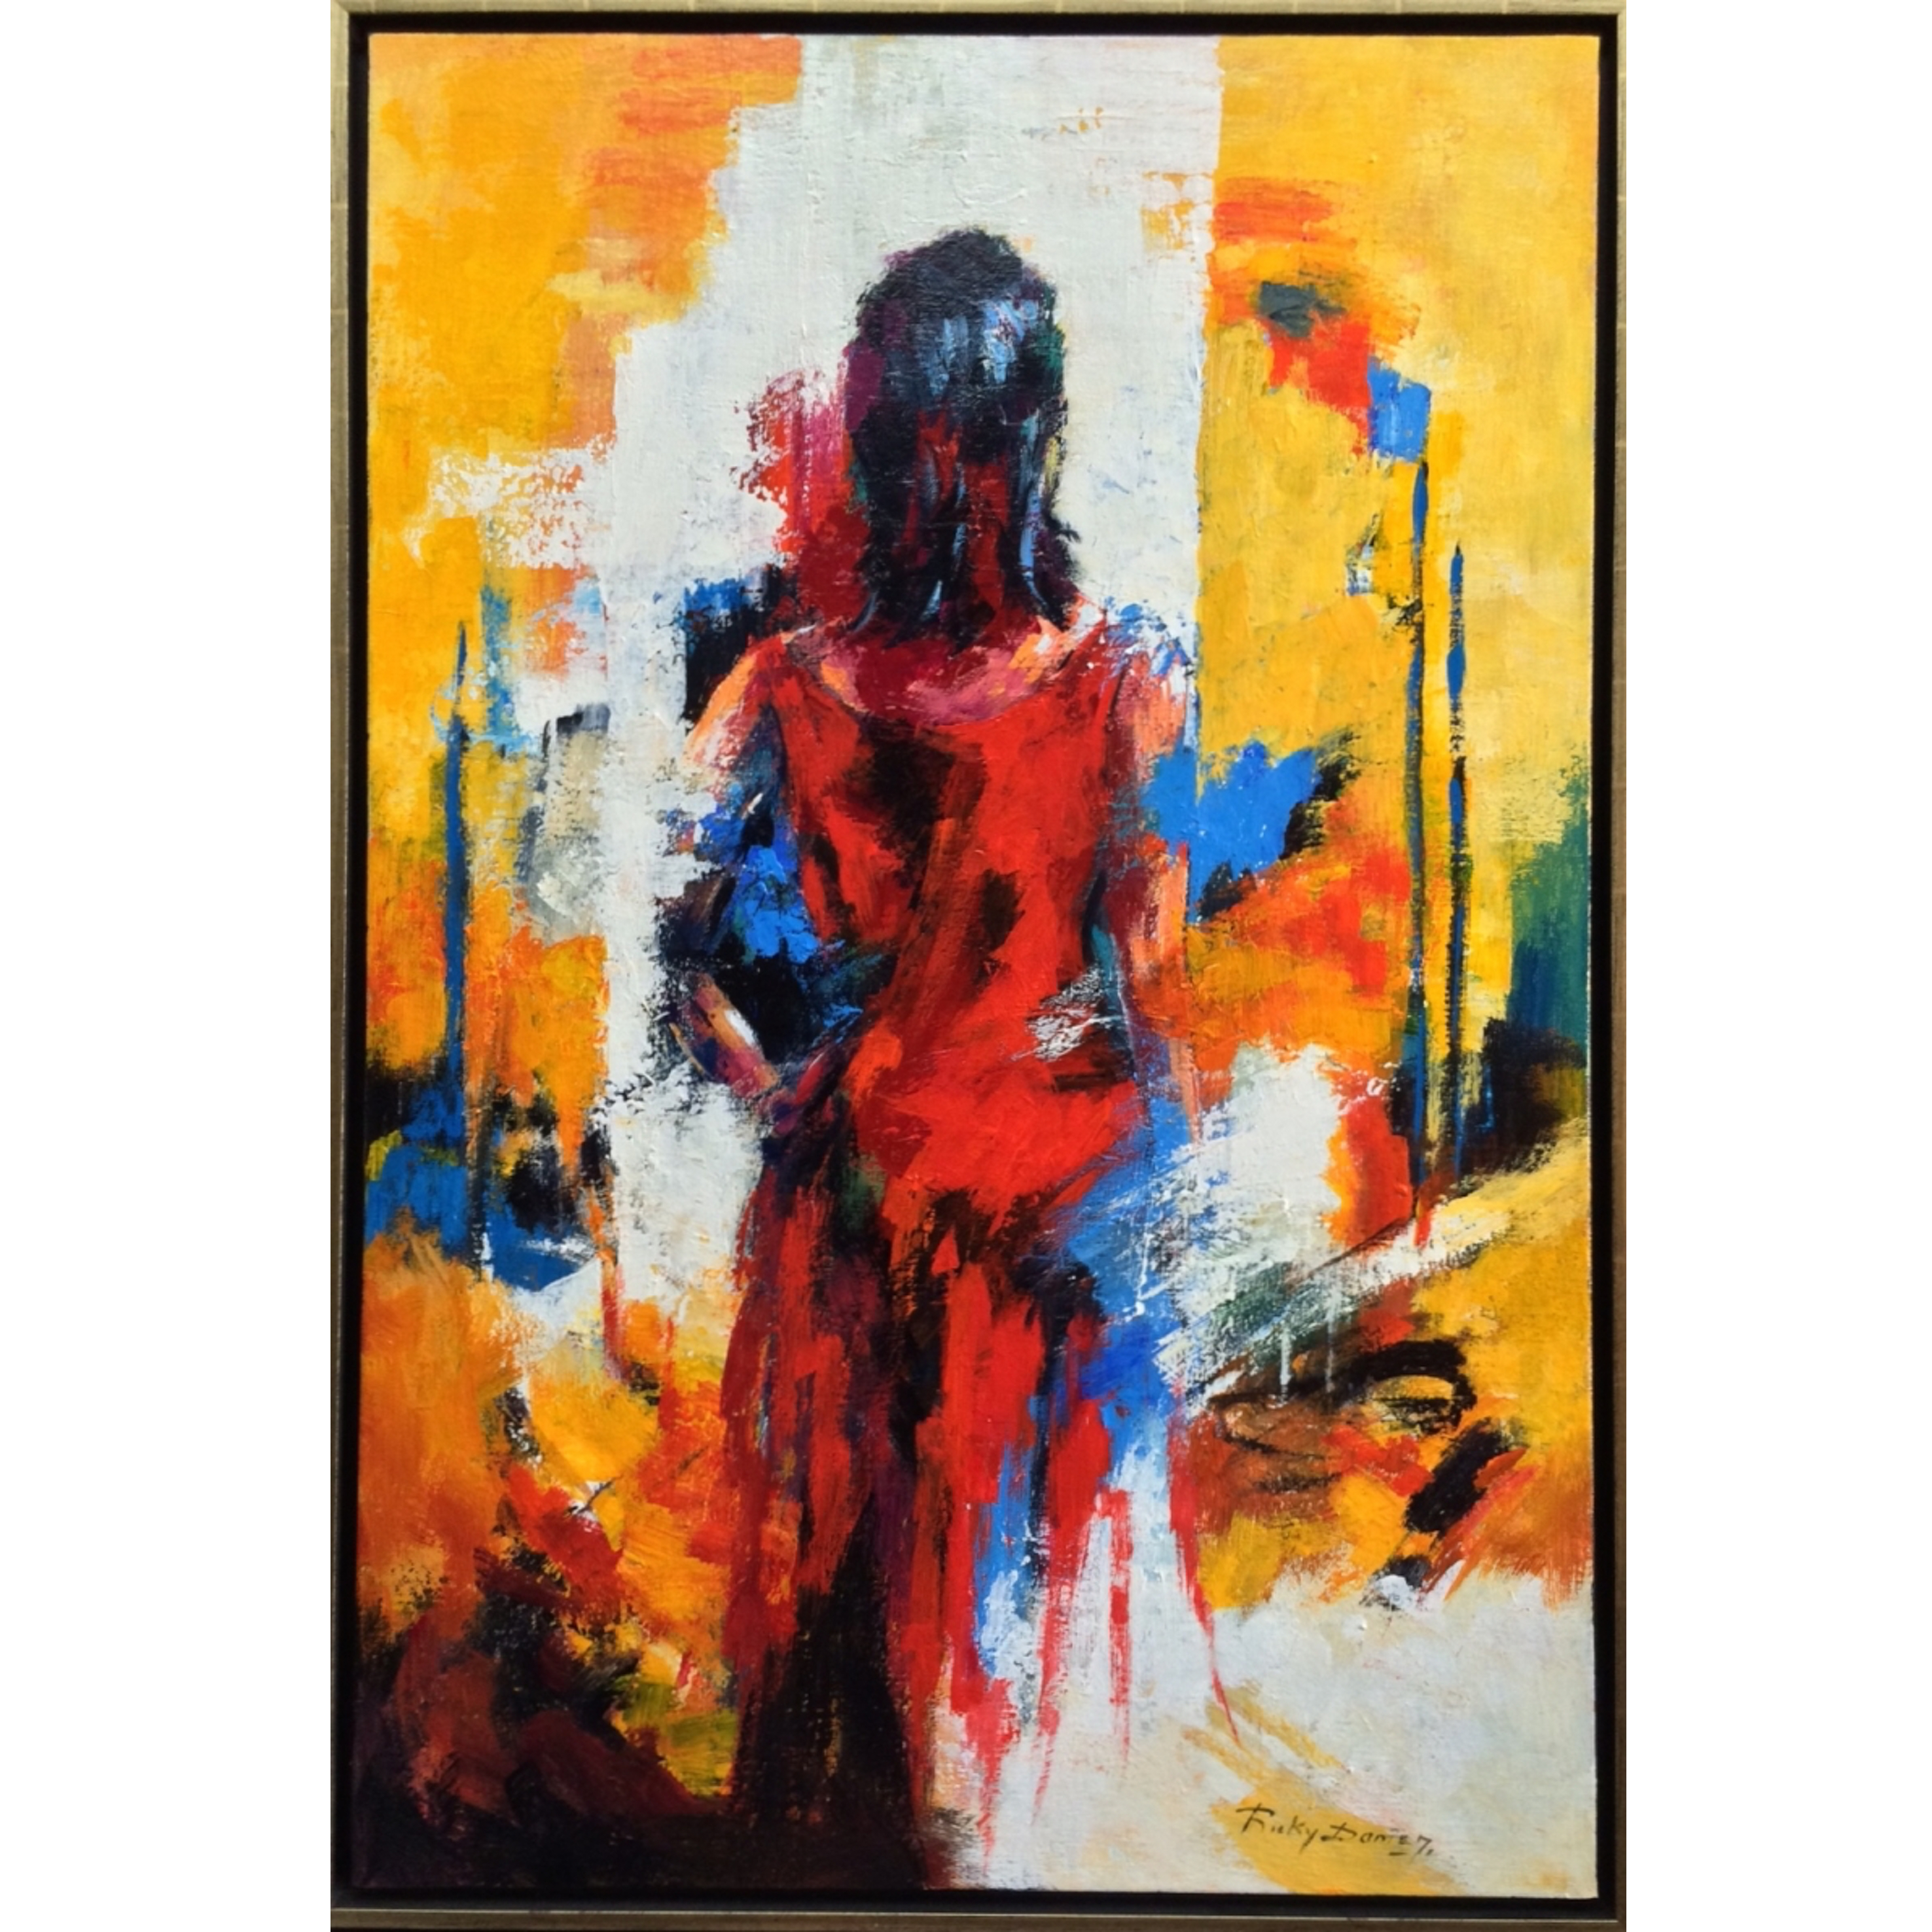 Ricky Damen schilderij 'Strong girl'